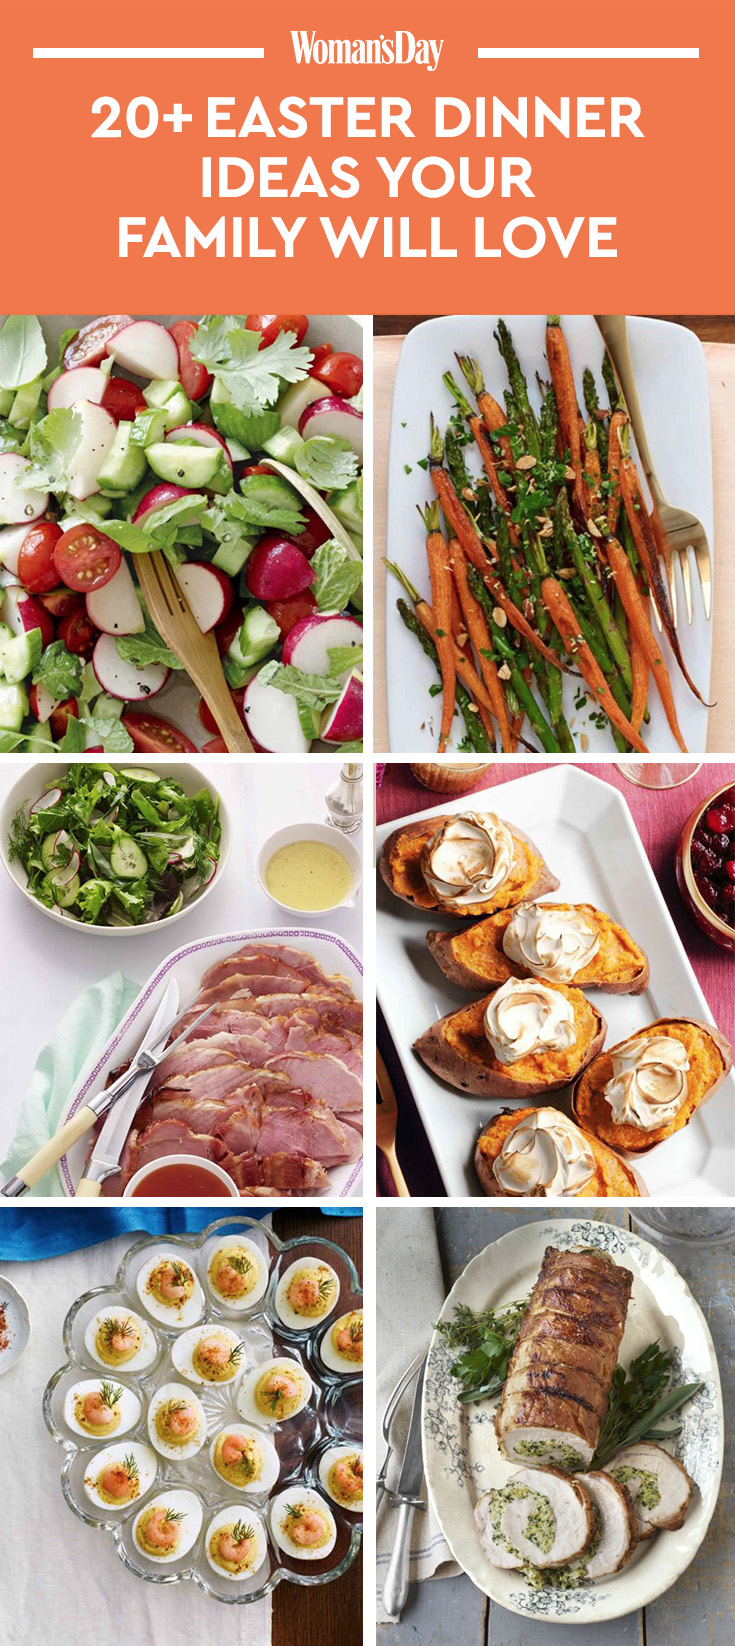 21 Easy Easter Dinner Ideas - Recipes for the Best Easter ...